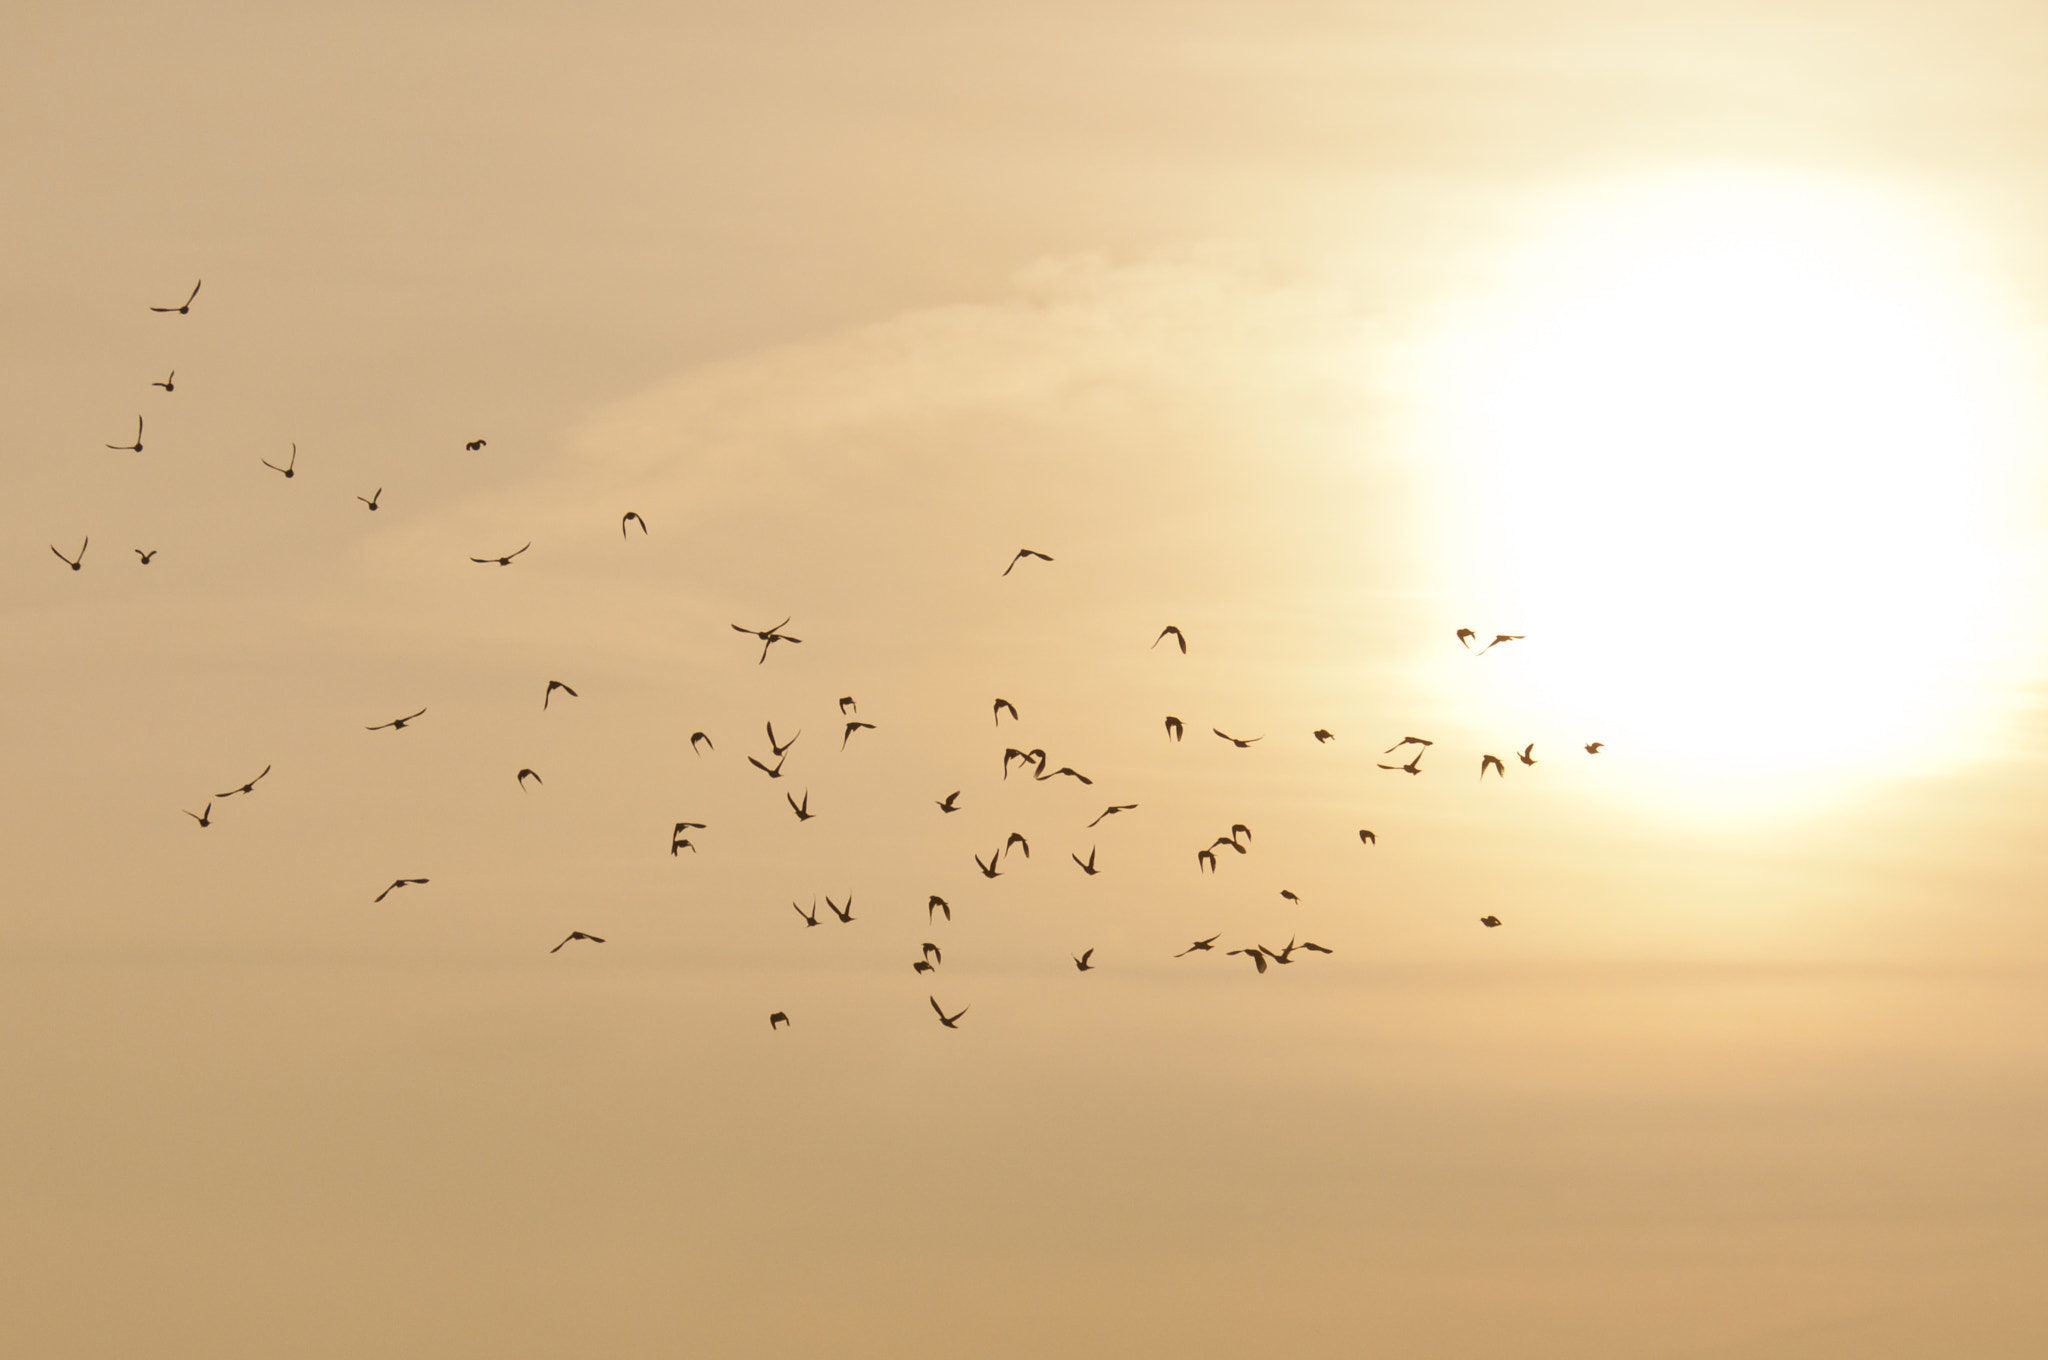 Photograph Starling murmuration at sunset by Graham Hush on 500px